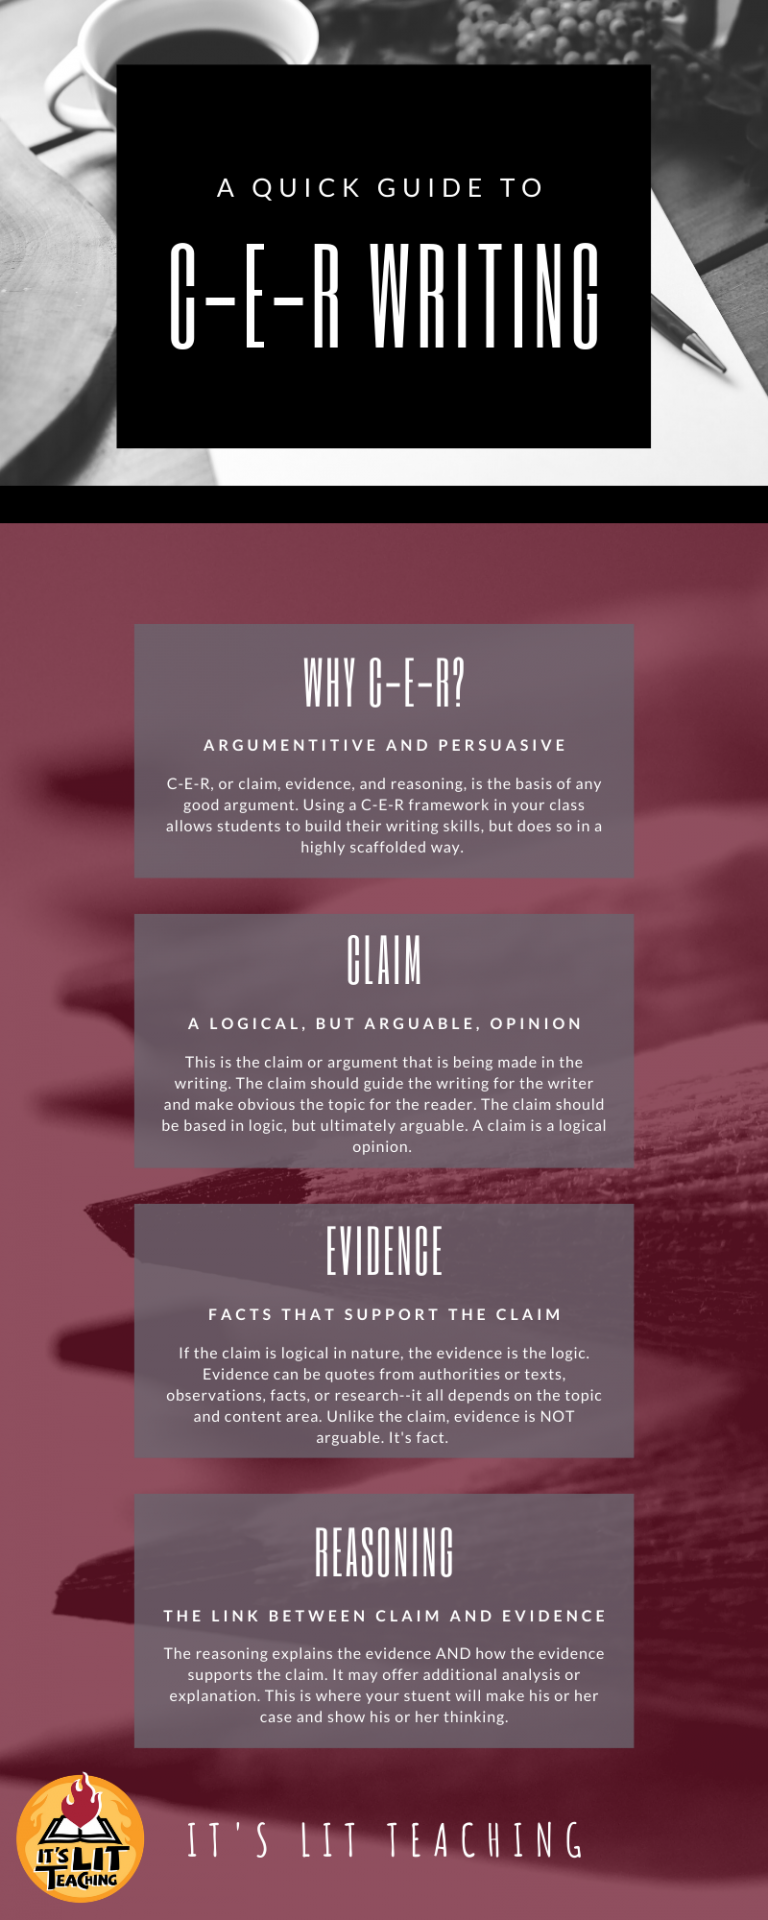 An infographic explaining C-E-R writing including why to use it, and an overview of claim, evidence, and reasoning